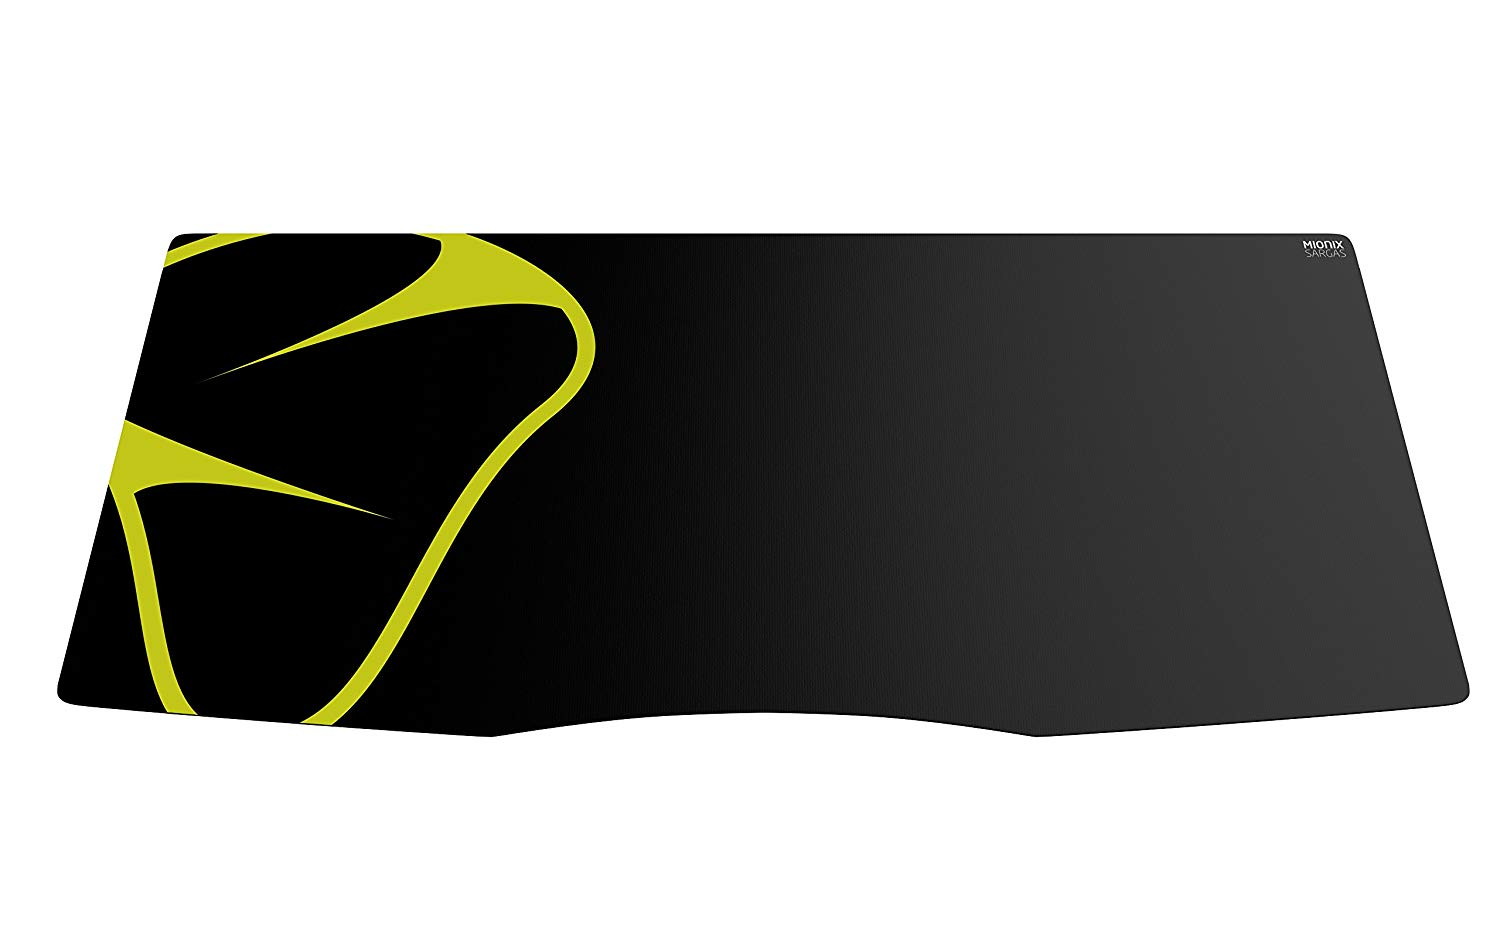 Mionix Sargas Softmat Mouse Pad, X-Large (35.4 x 15.7) - Black